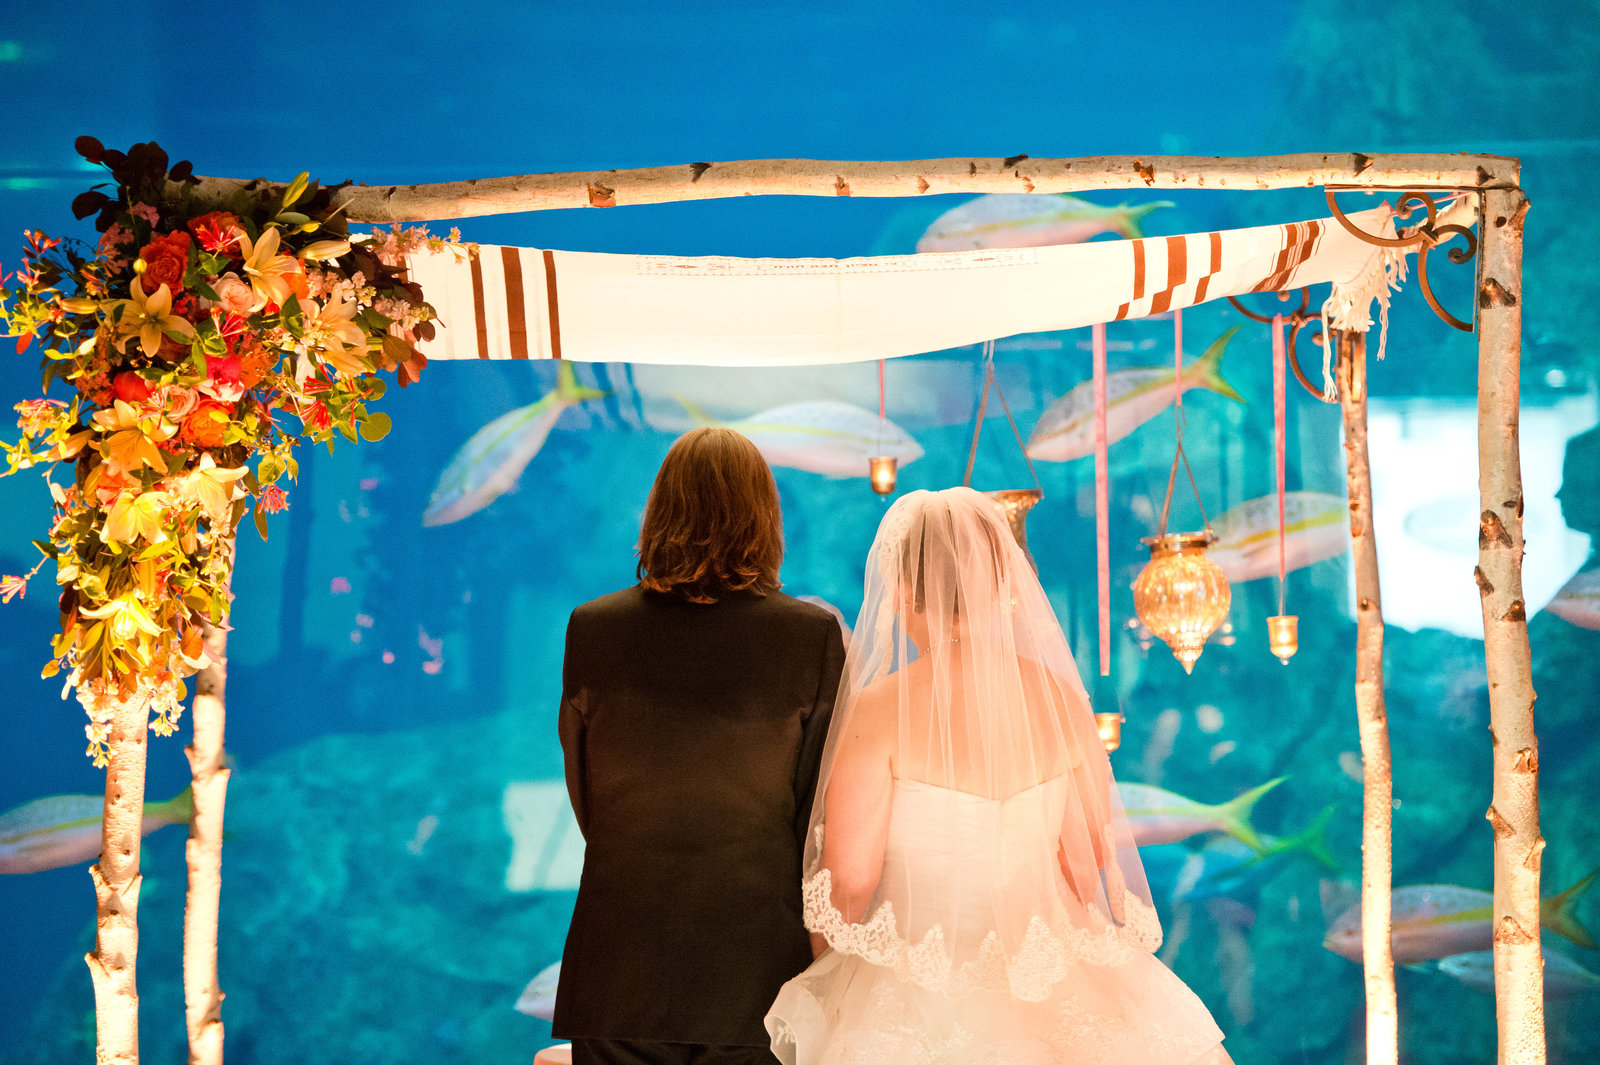 Jewish Wedding ceremony at Adventure Aquarium in Camden New Jersey. Wedding in Currents Ballroom. Chuppah design by A Garden Party in Elmer, NJ photo by Amanda Young Photography